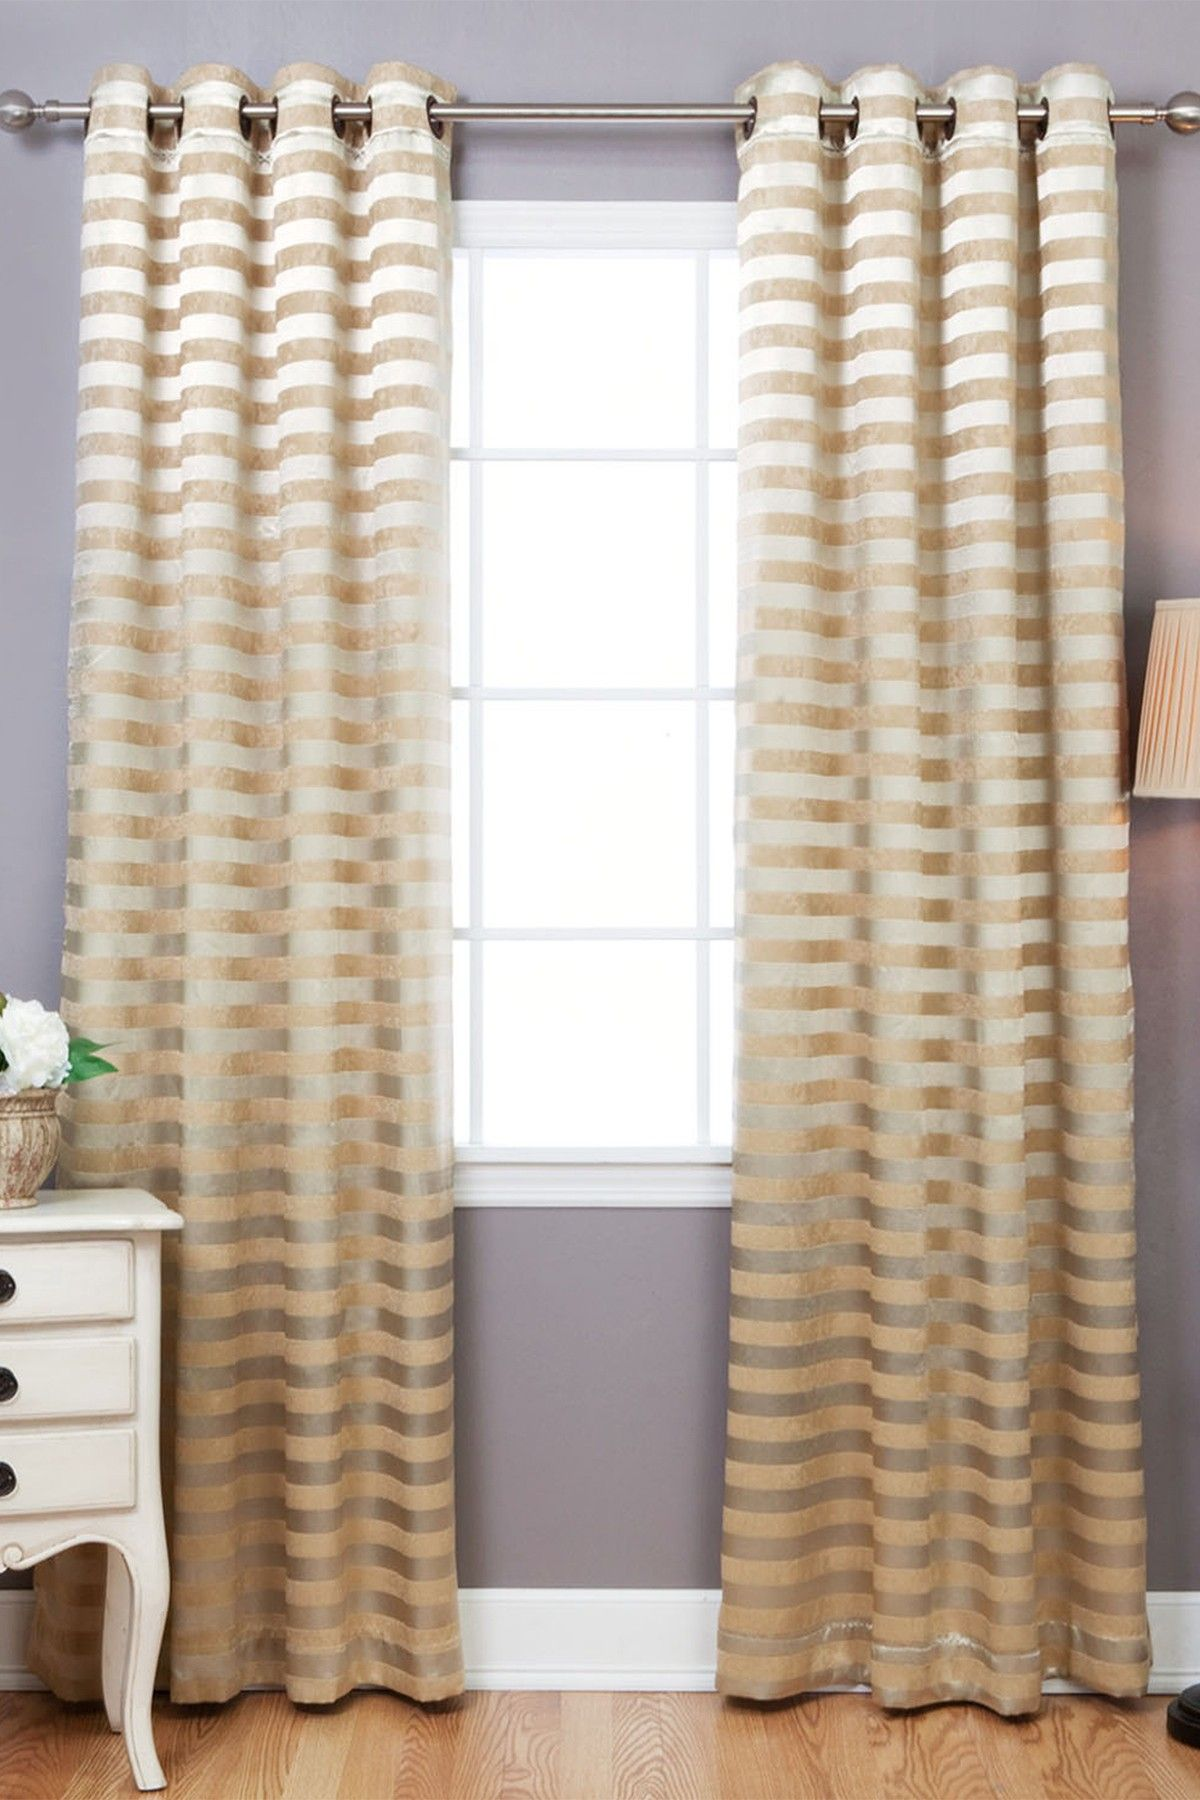 pocket l curtains in depot n eclipse drapes home treatments b blackout gold curtain window the morrow rod